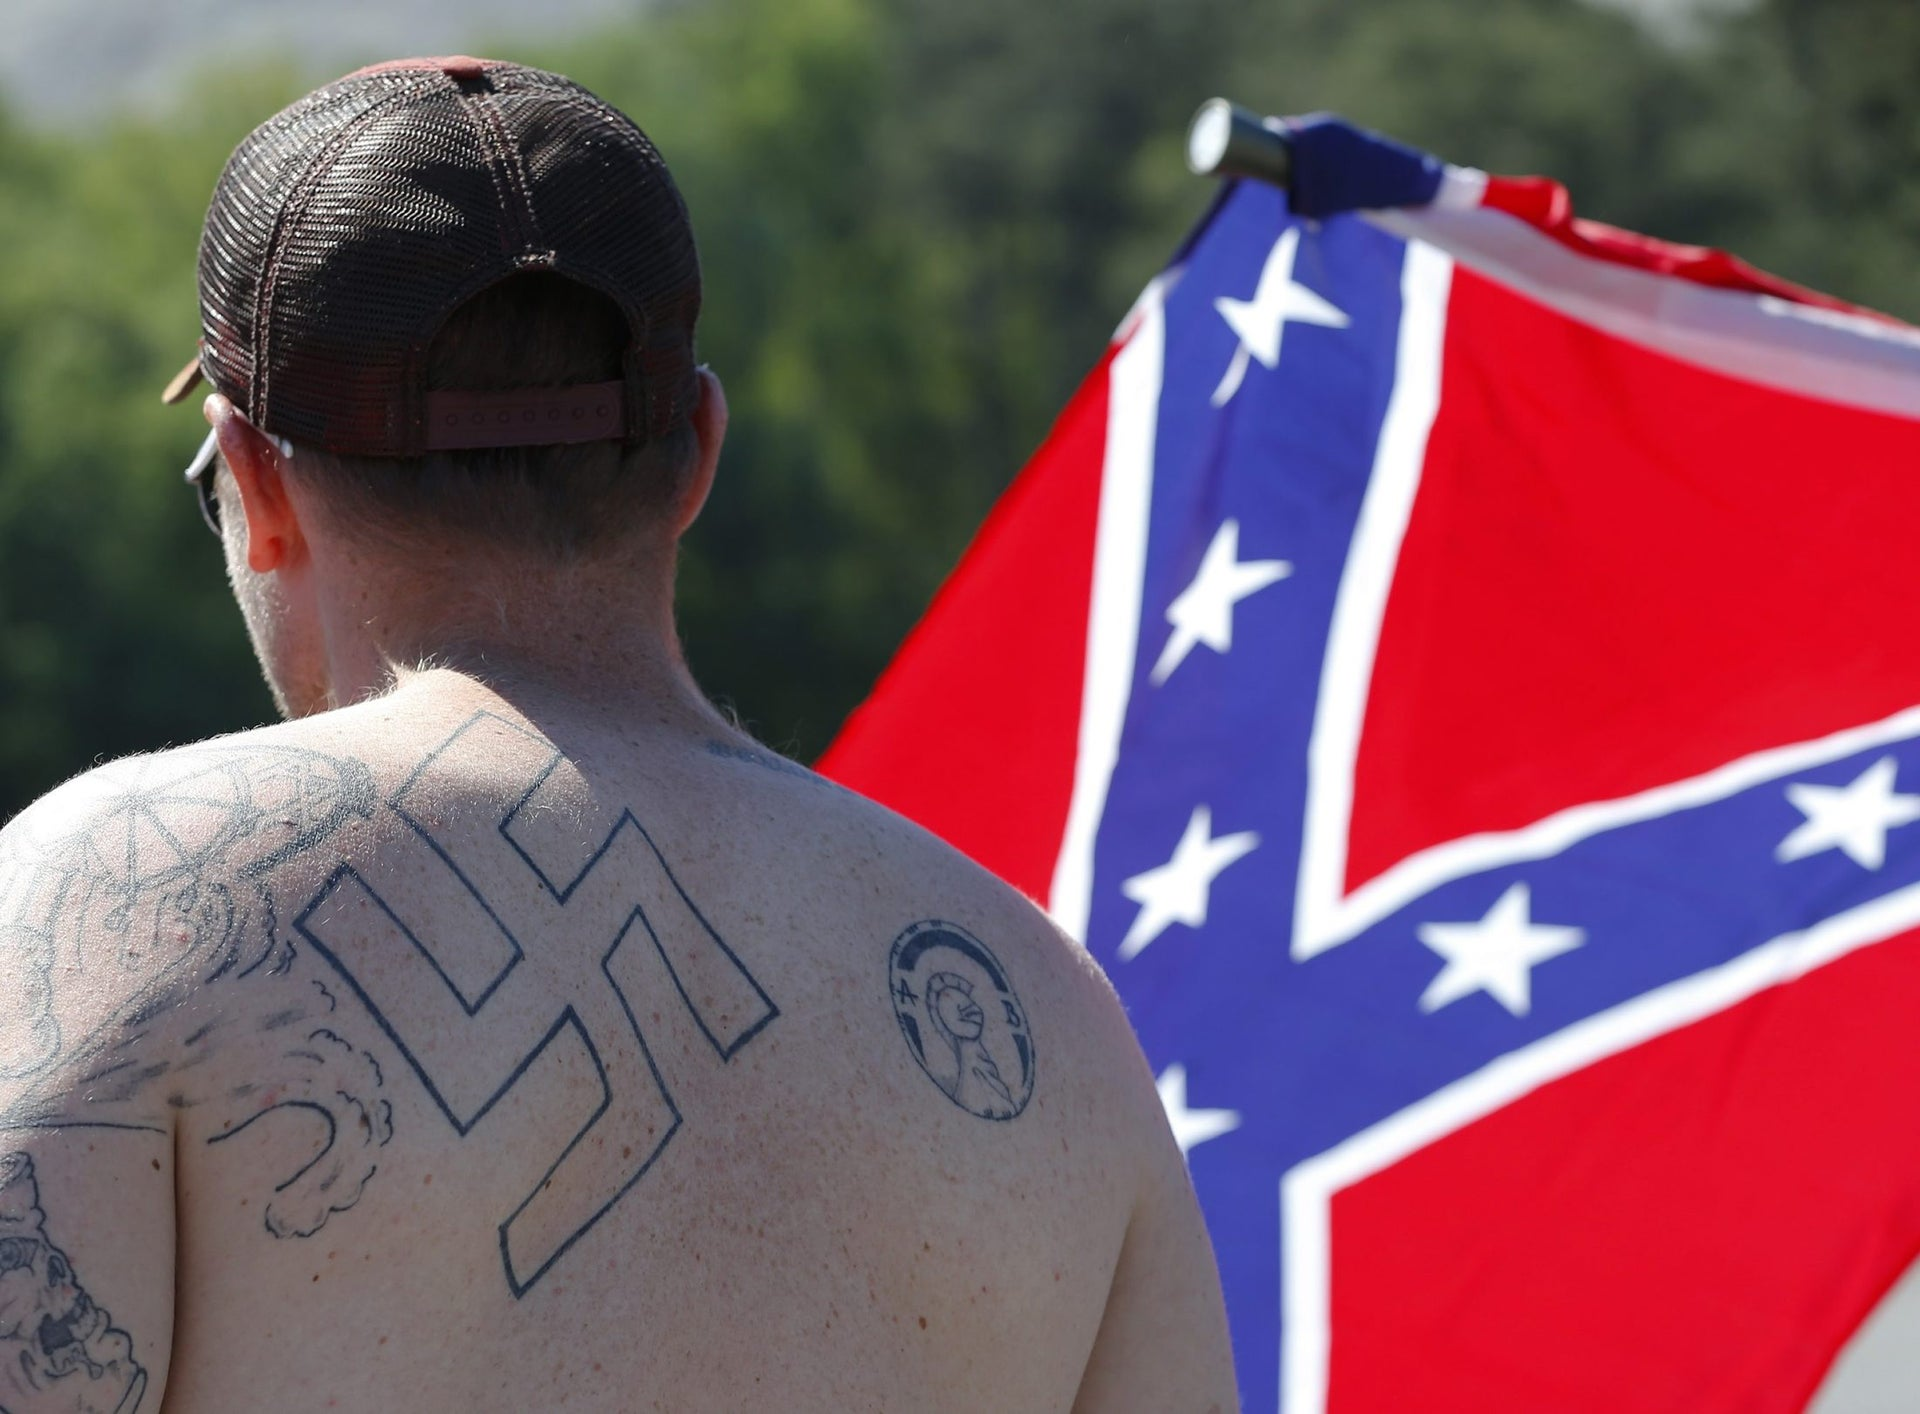 ADVANCE FOR JUNE 30 -In this April 23, 2016 photo, a man walks during a protest at Stone Mountain Park, in Stone Mountain, Ga. The Ku Klux Klan is trying to raise its hooded head 150 years after it was founded following the Civil War. The ease of online communication is helping the infamous white separatist movement reach new members, and issues important to the Klan like opposition to immigration are coming to the political forefront as the presidential election looms.